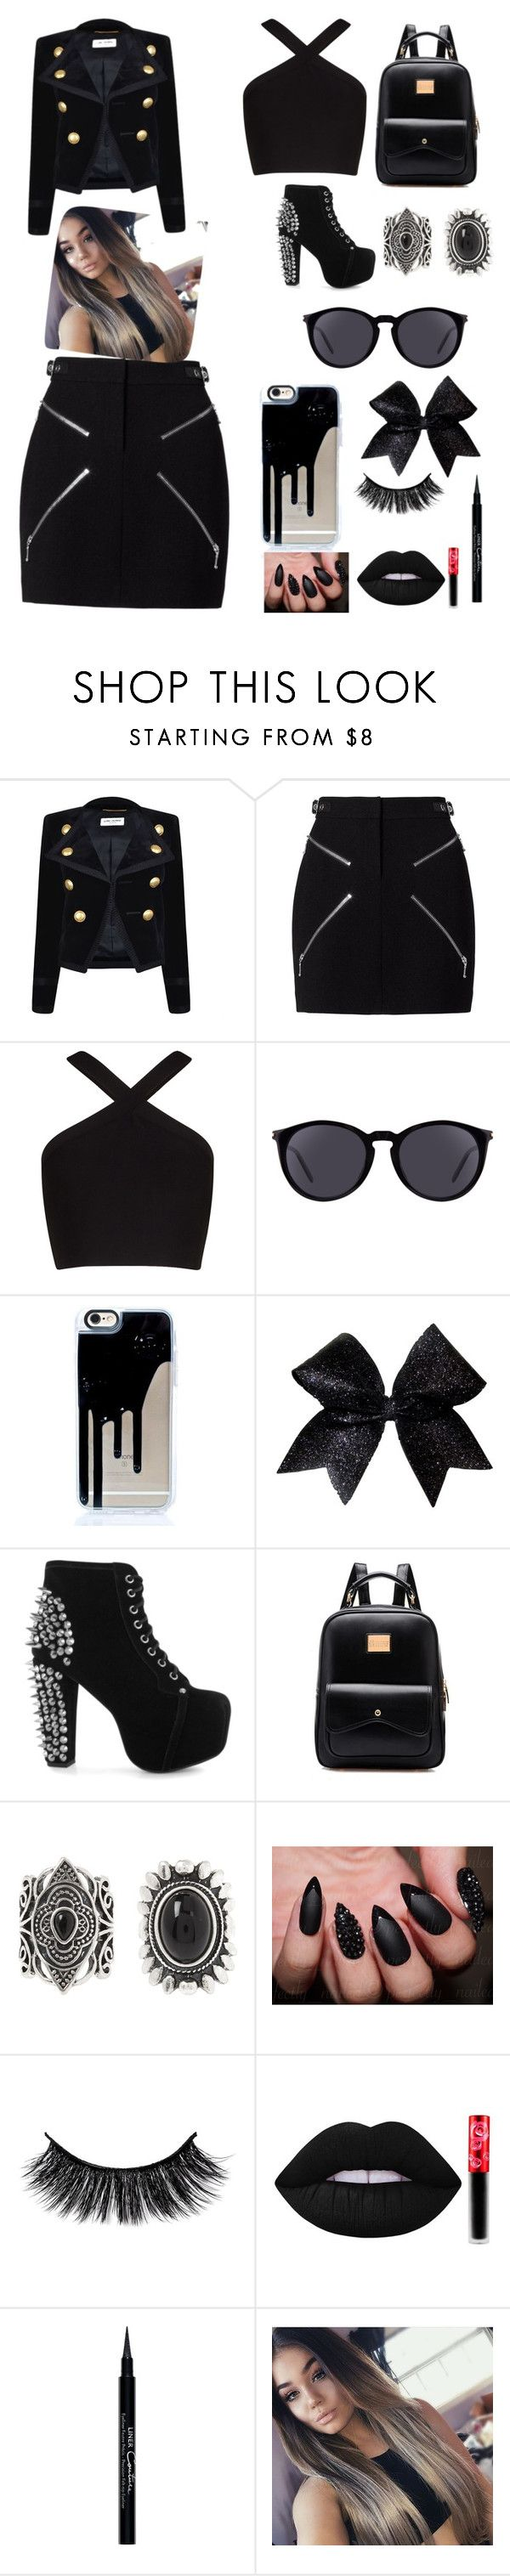 """Cute bad girl outfit"" by americapatino ❤ liked on Polyvore featuring Yves Saint Laurent, Alexander Wang, BCBGMAXAZRIA, Jeffrey Campbell, New Look, Lime Crime and Givenchy"